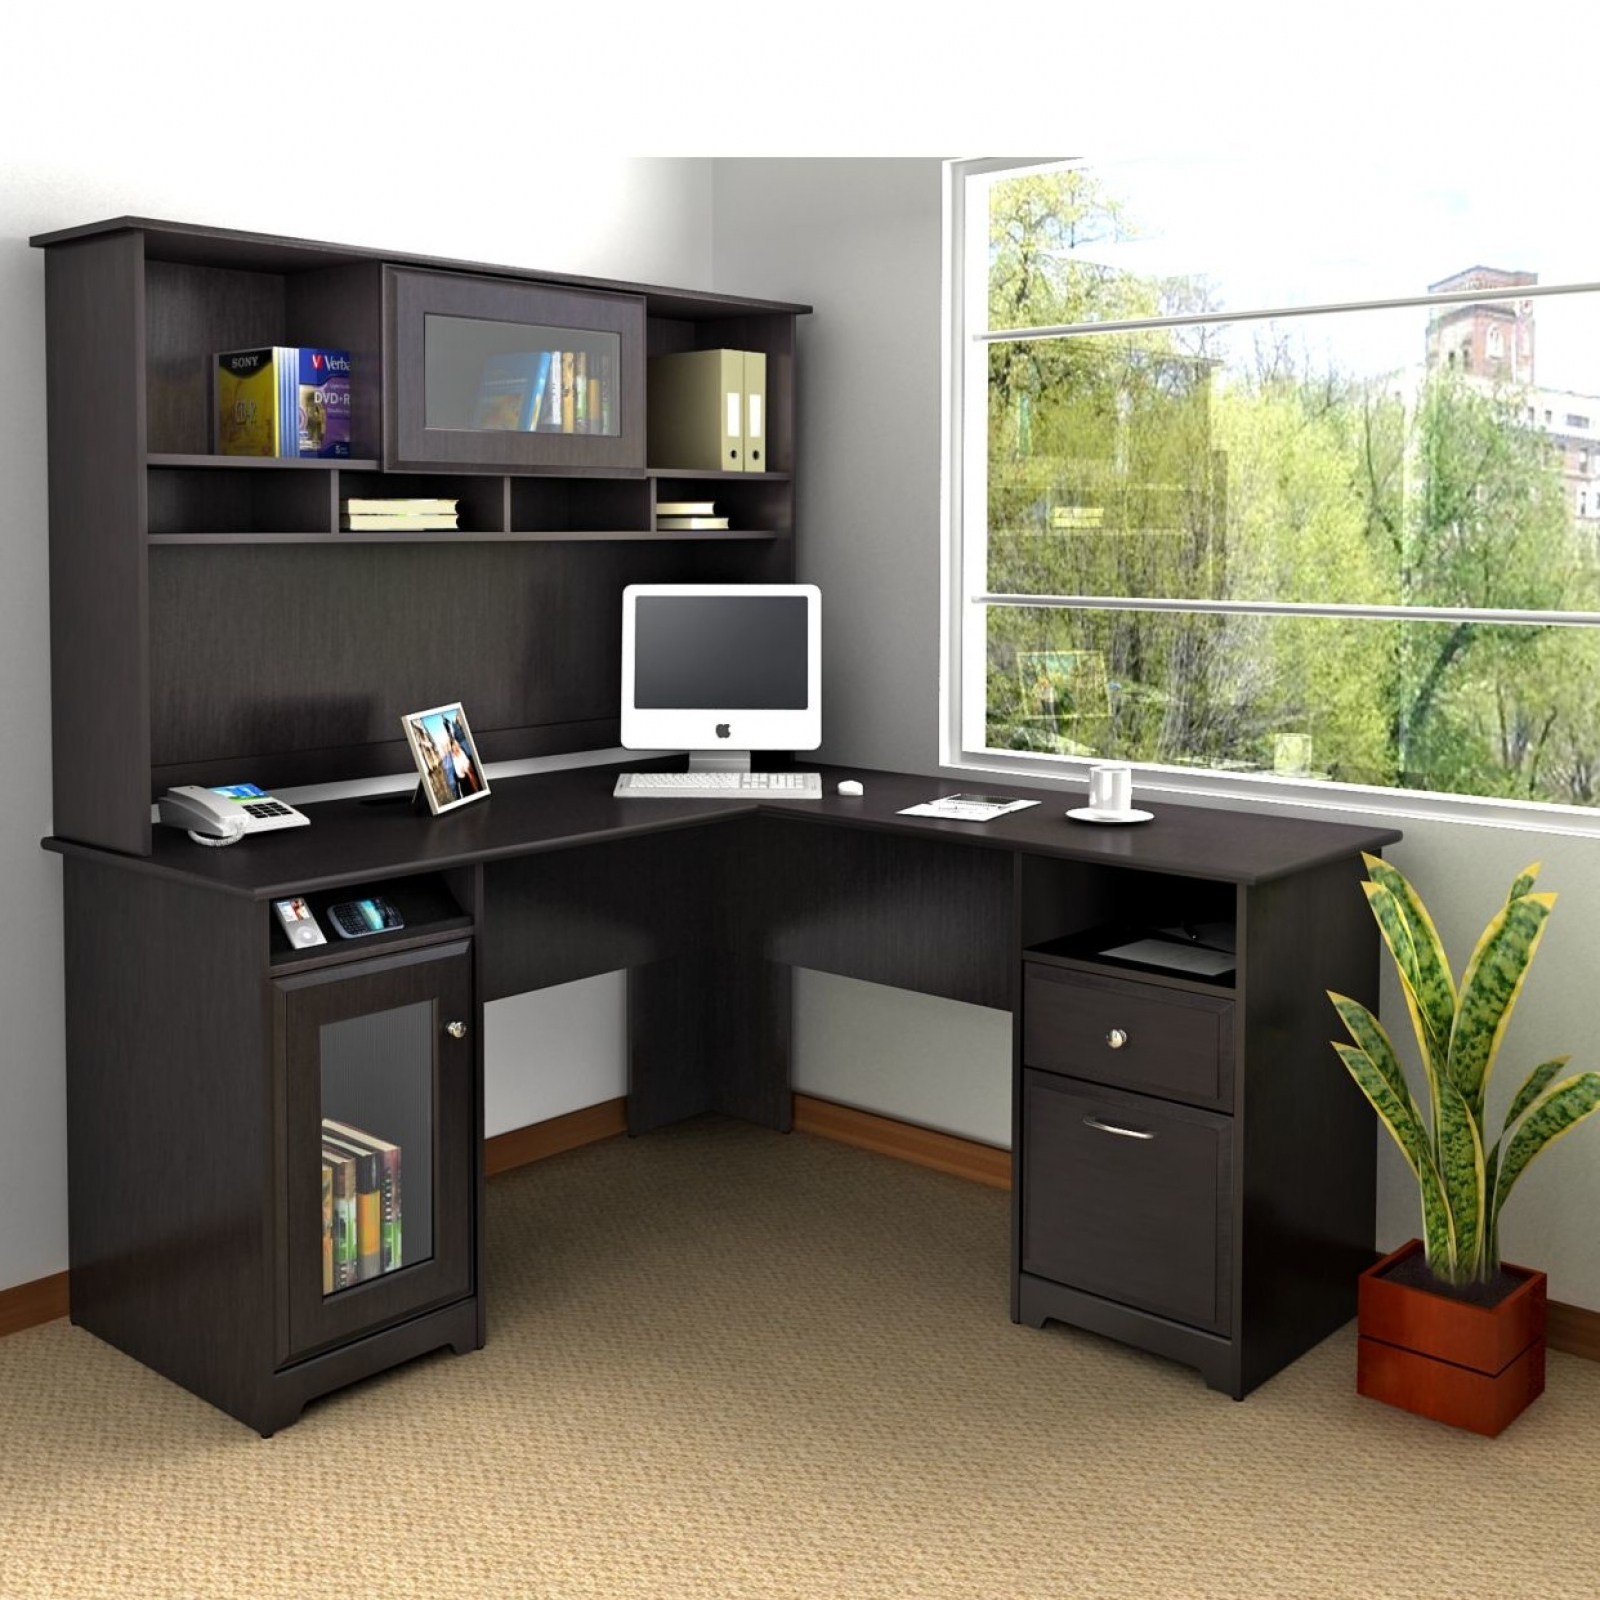 Superb Corner Computer Desk With Hutch For Home